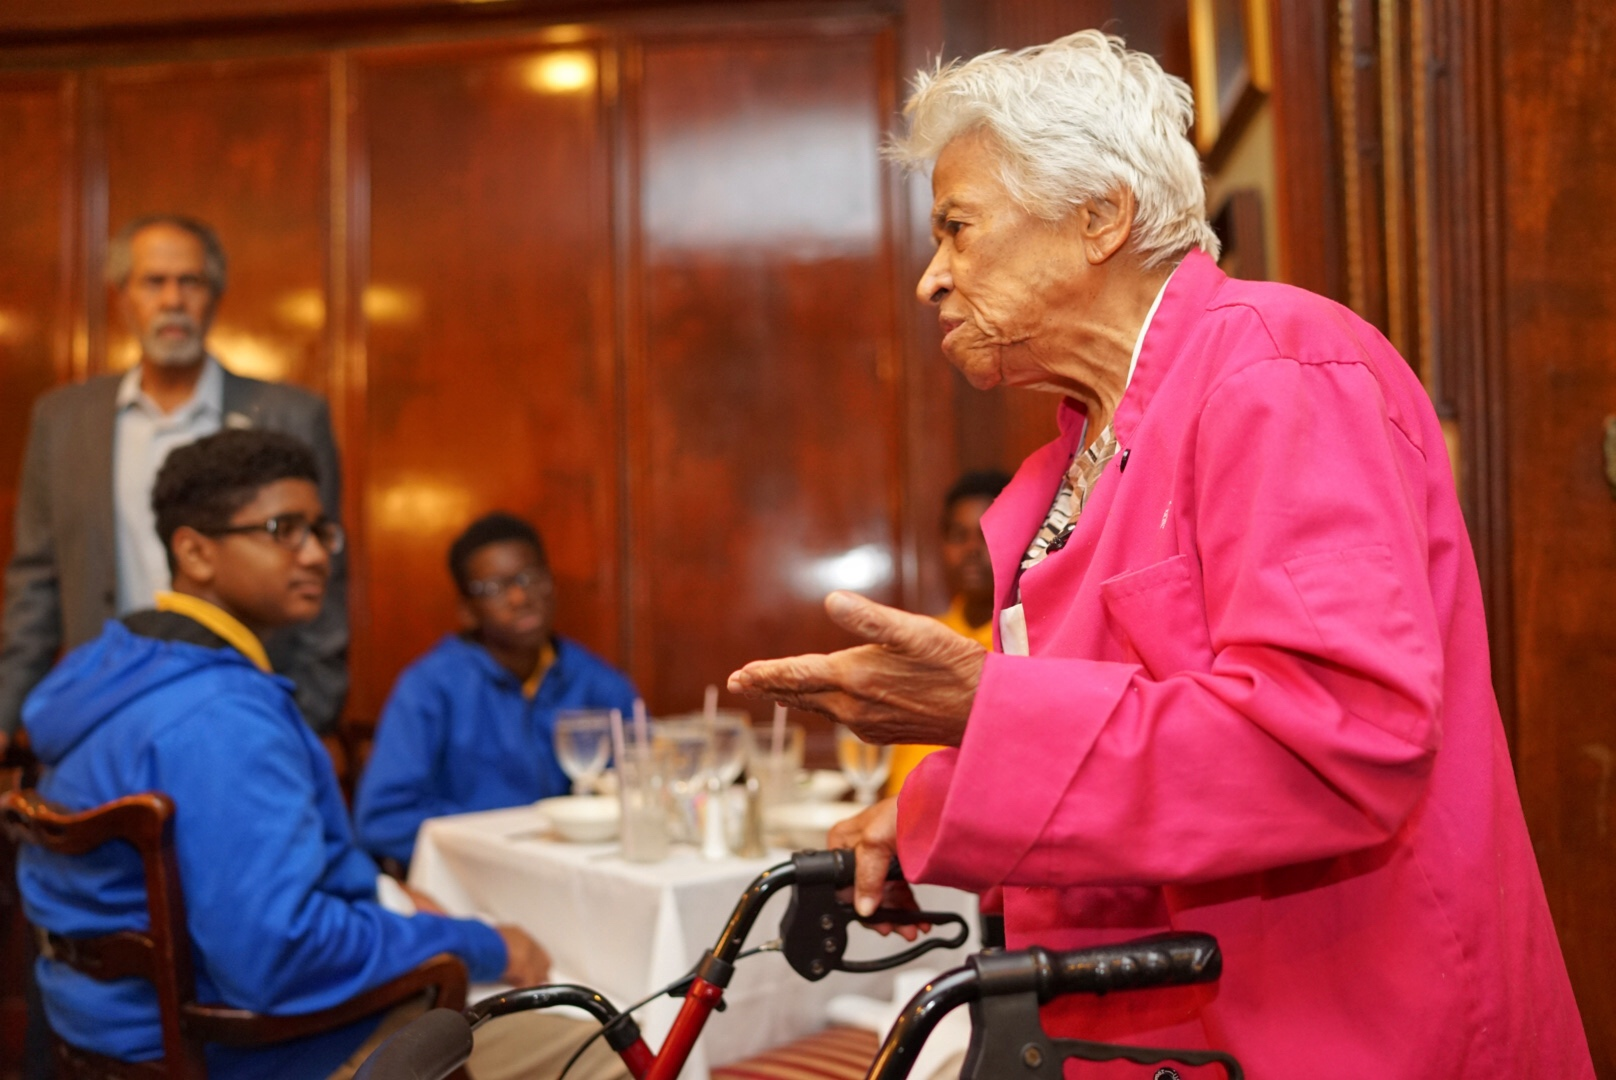 Leah Chase passes along words of wisdom to local kids during a special event at her restaurant, Dooky Chase's. (Photo: Paul Broussard)